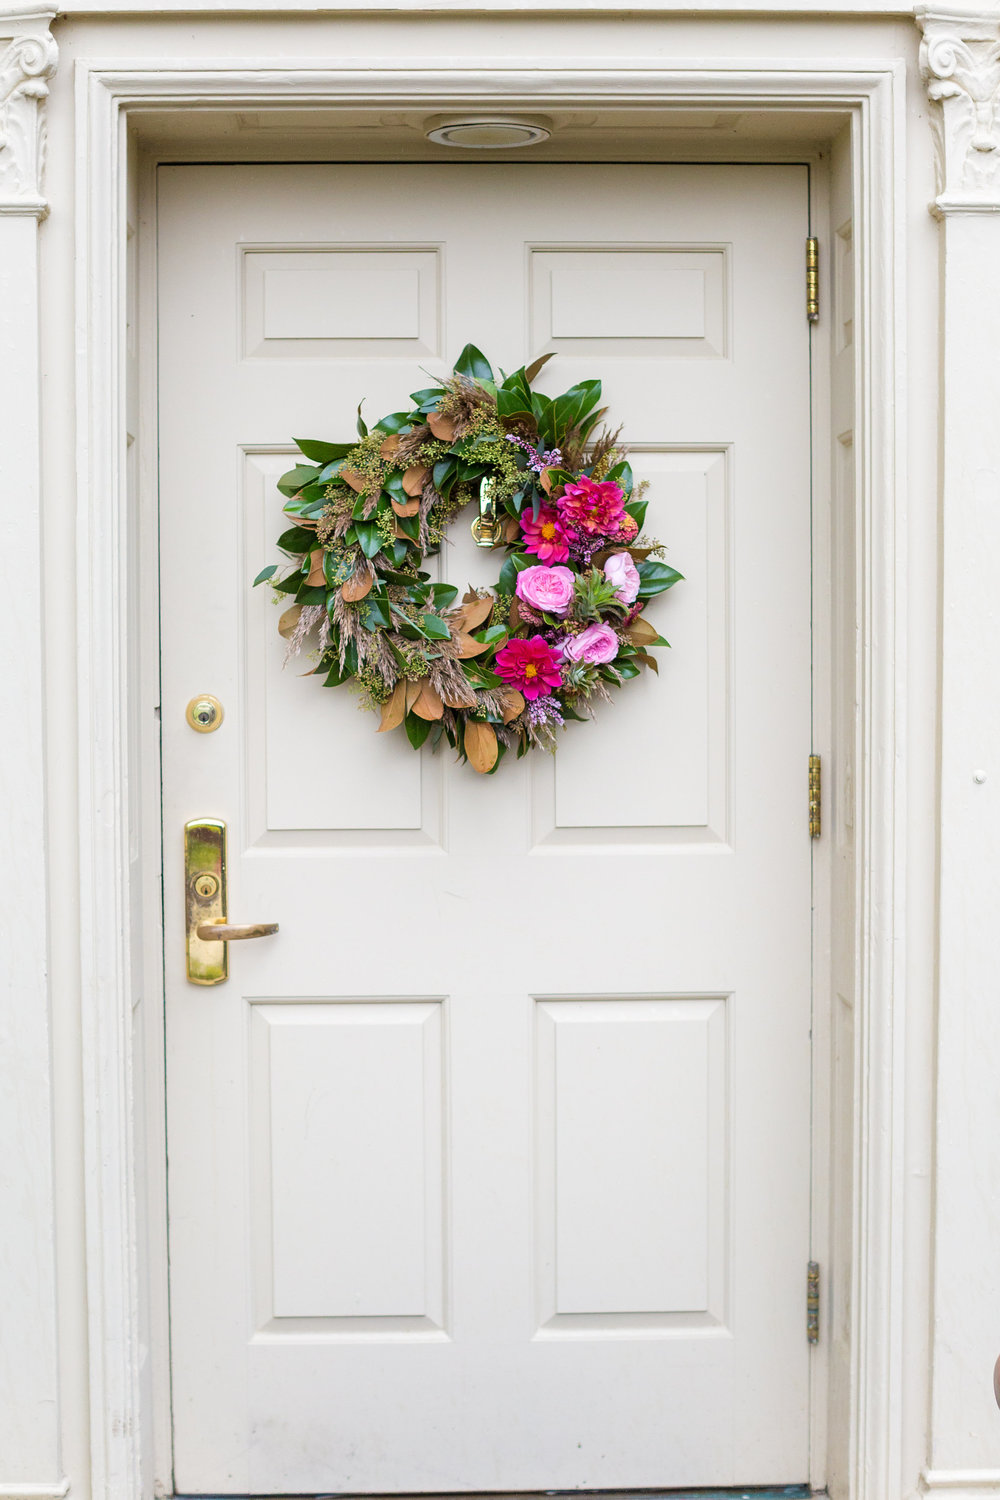 Guests were greeted with a welcome that was in true A Garden Party fashion.  I love this wreath of magnolia leaves, eucalyptus, peach garden roses and dahlias.